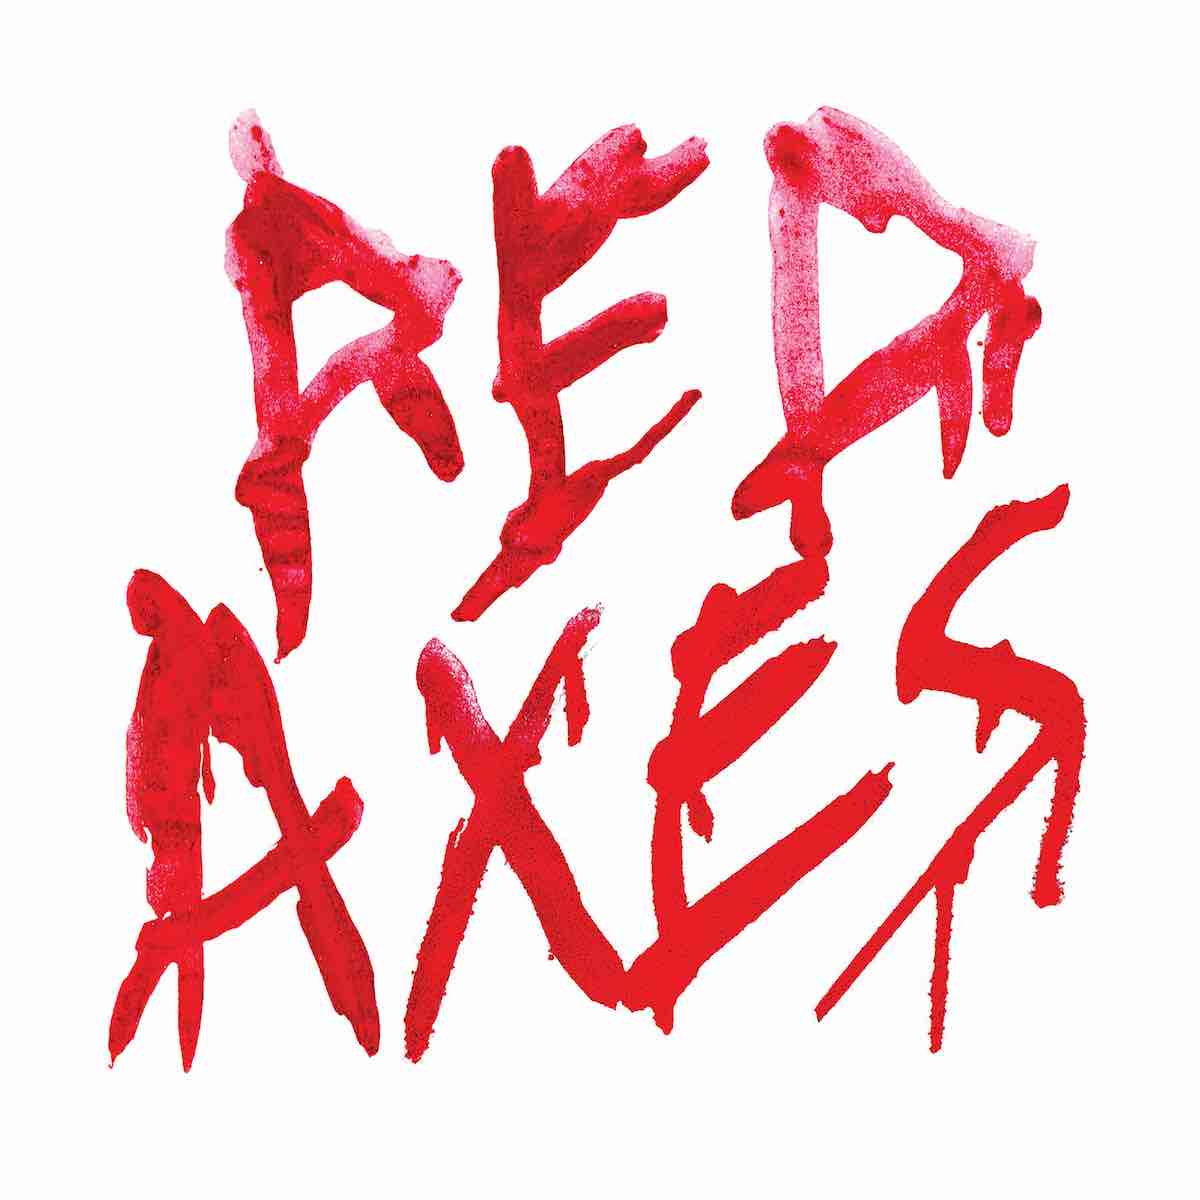 Red Axes Album Release